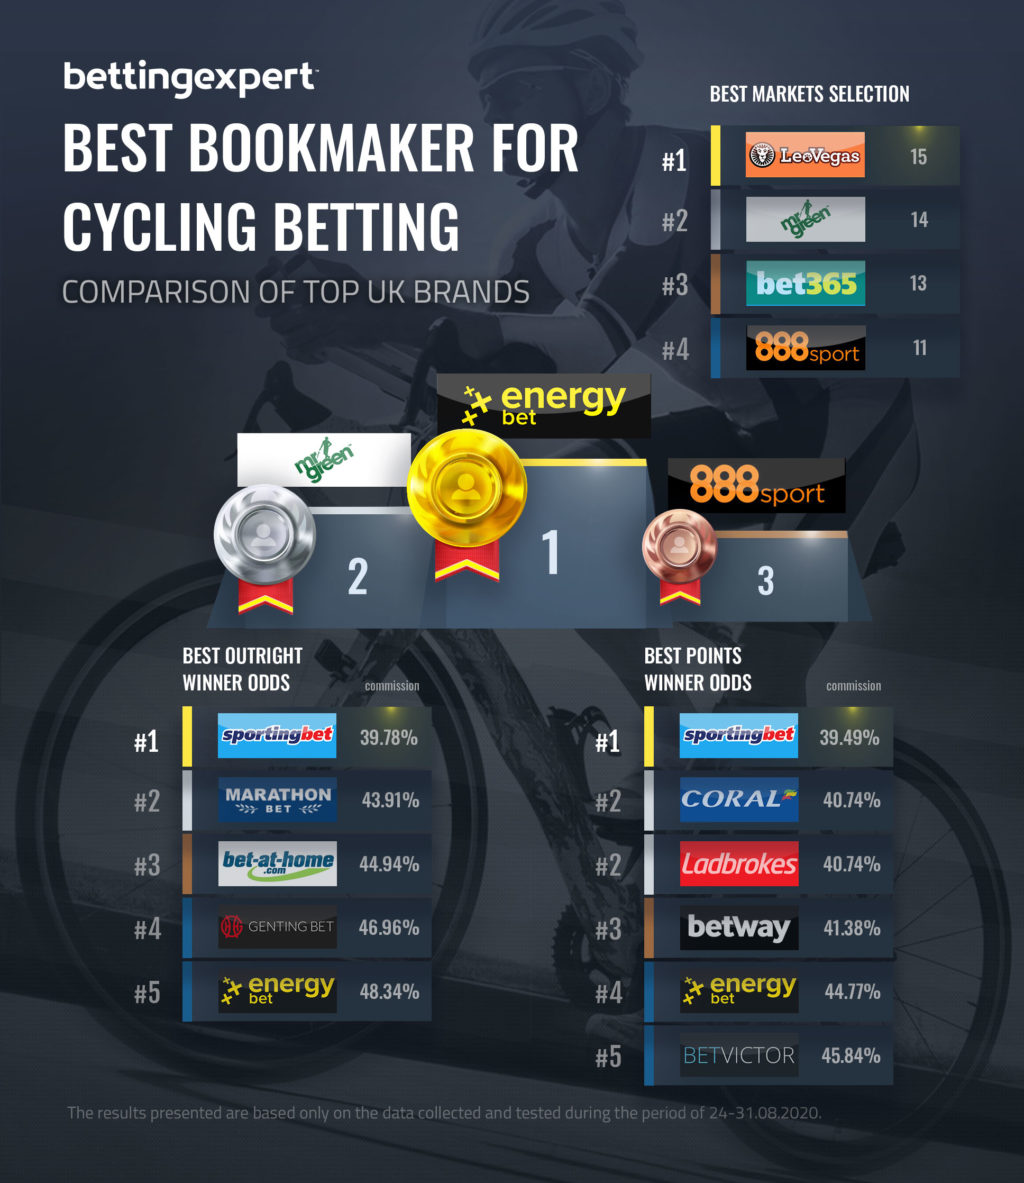 Best Bookmaker for Cycling Bettin